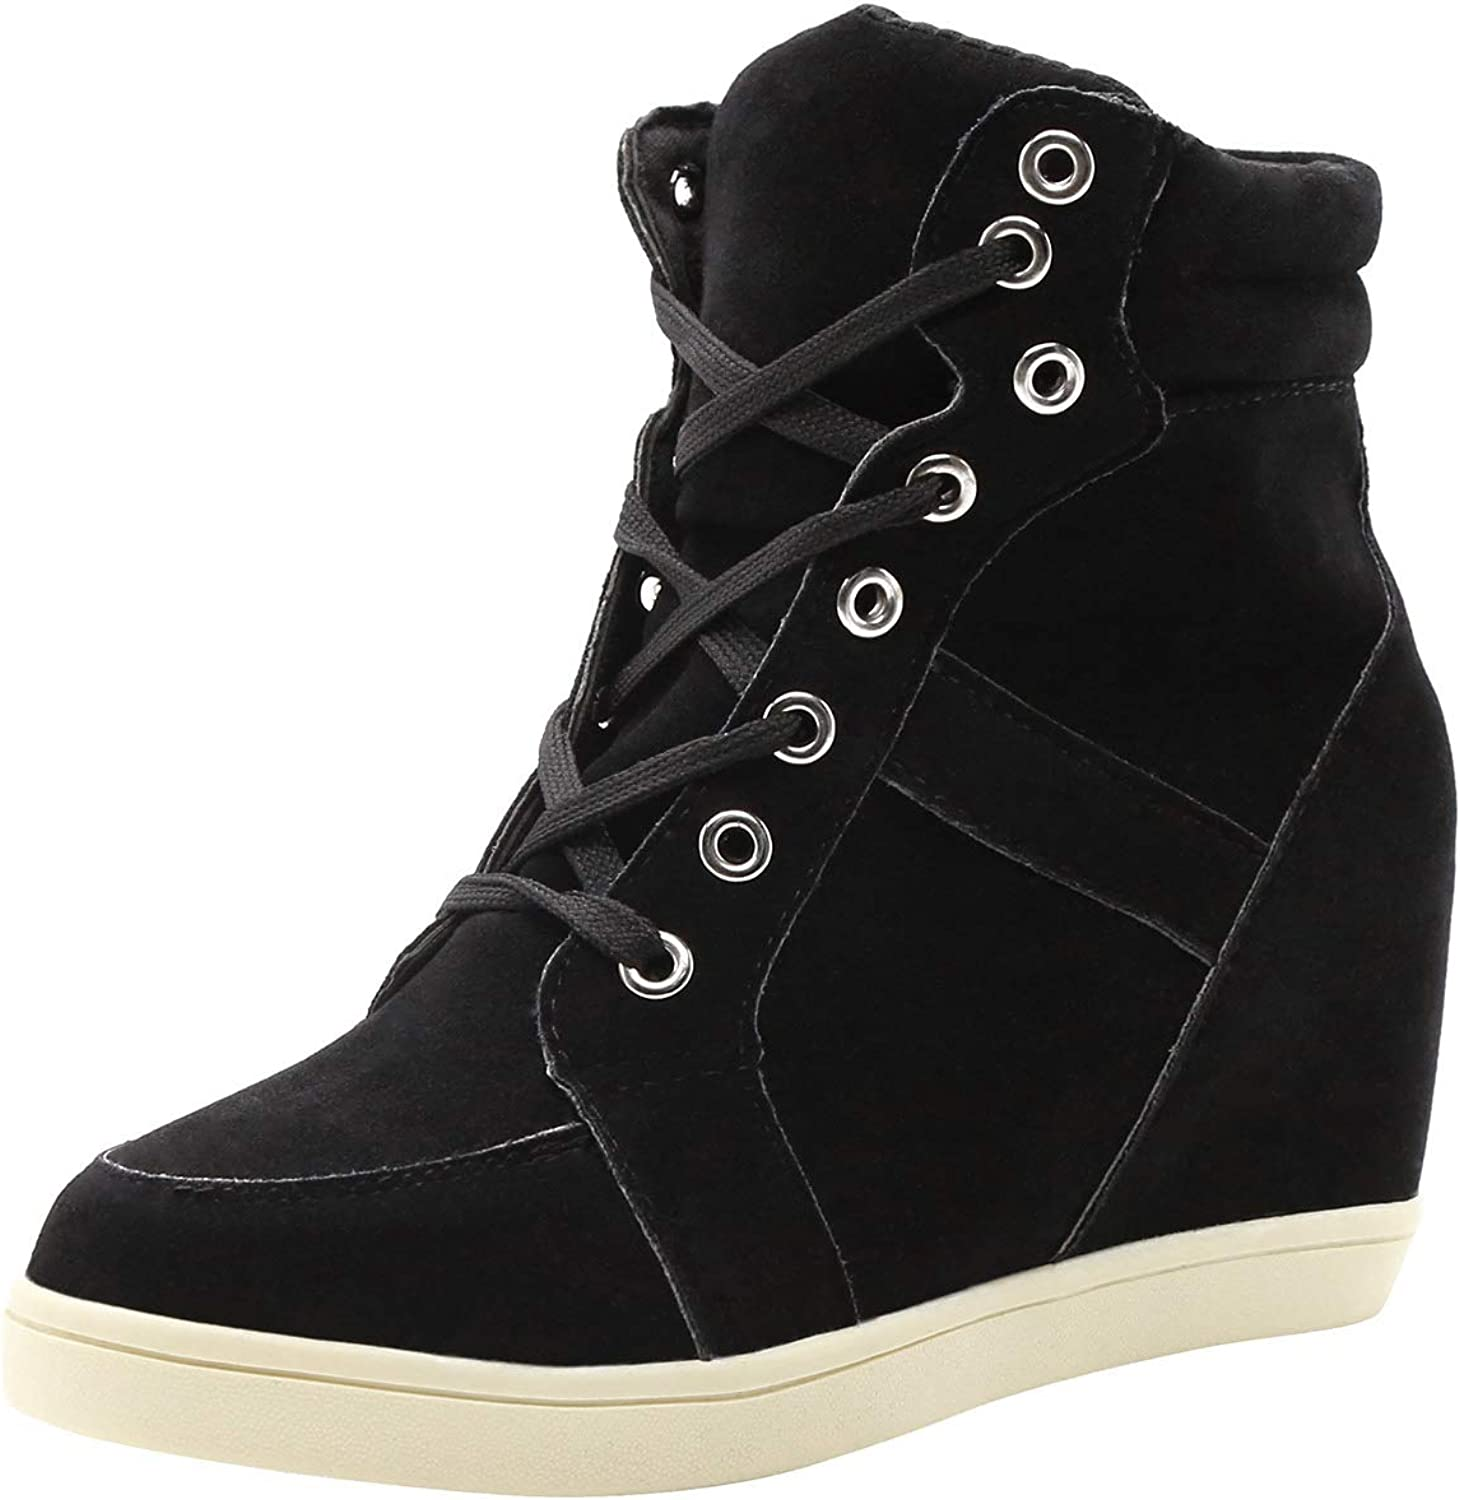 T&Mates Womens Casual Round Toe High Top Lace up Hidden Wedge Nubuck Fashion Sneaker